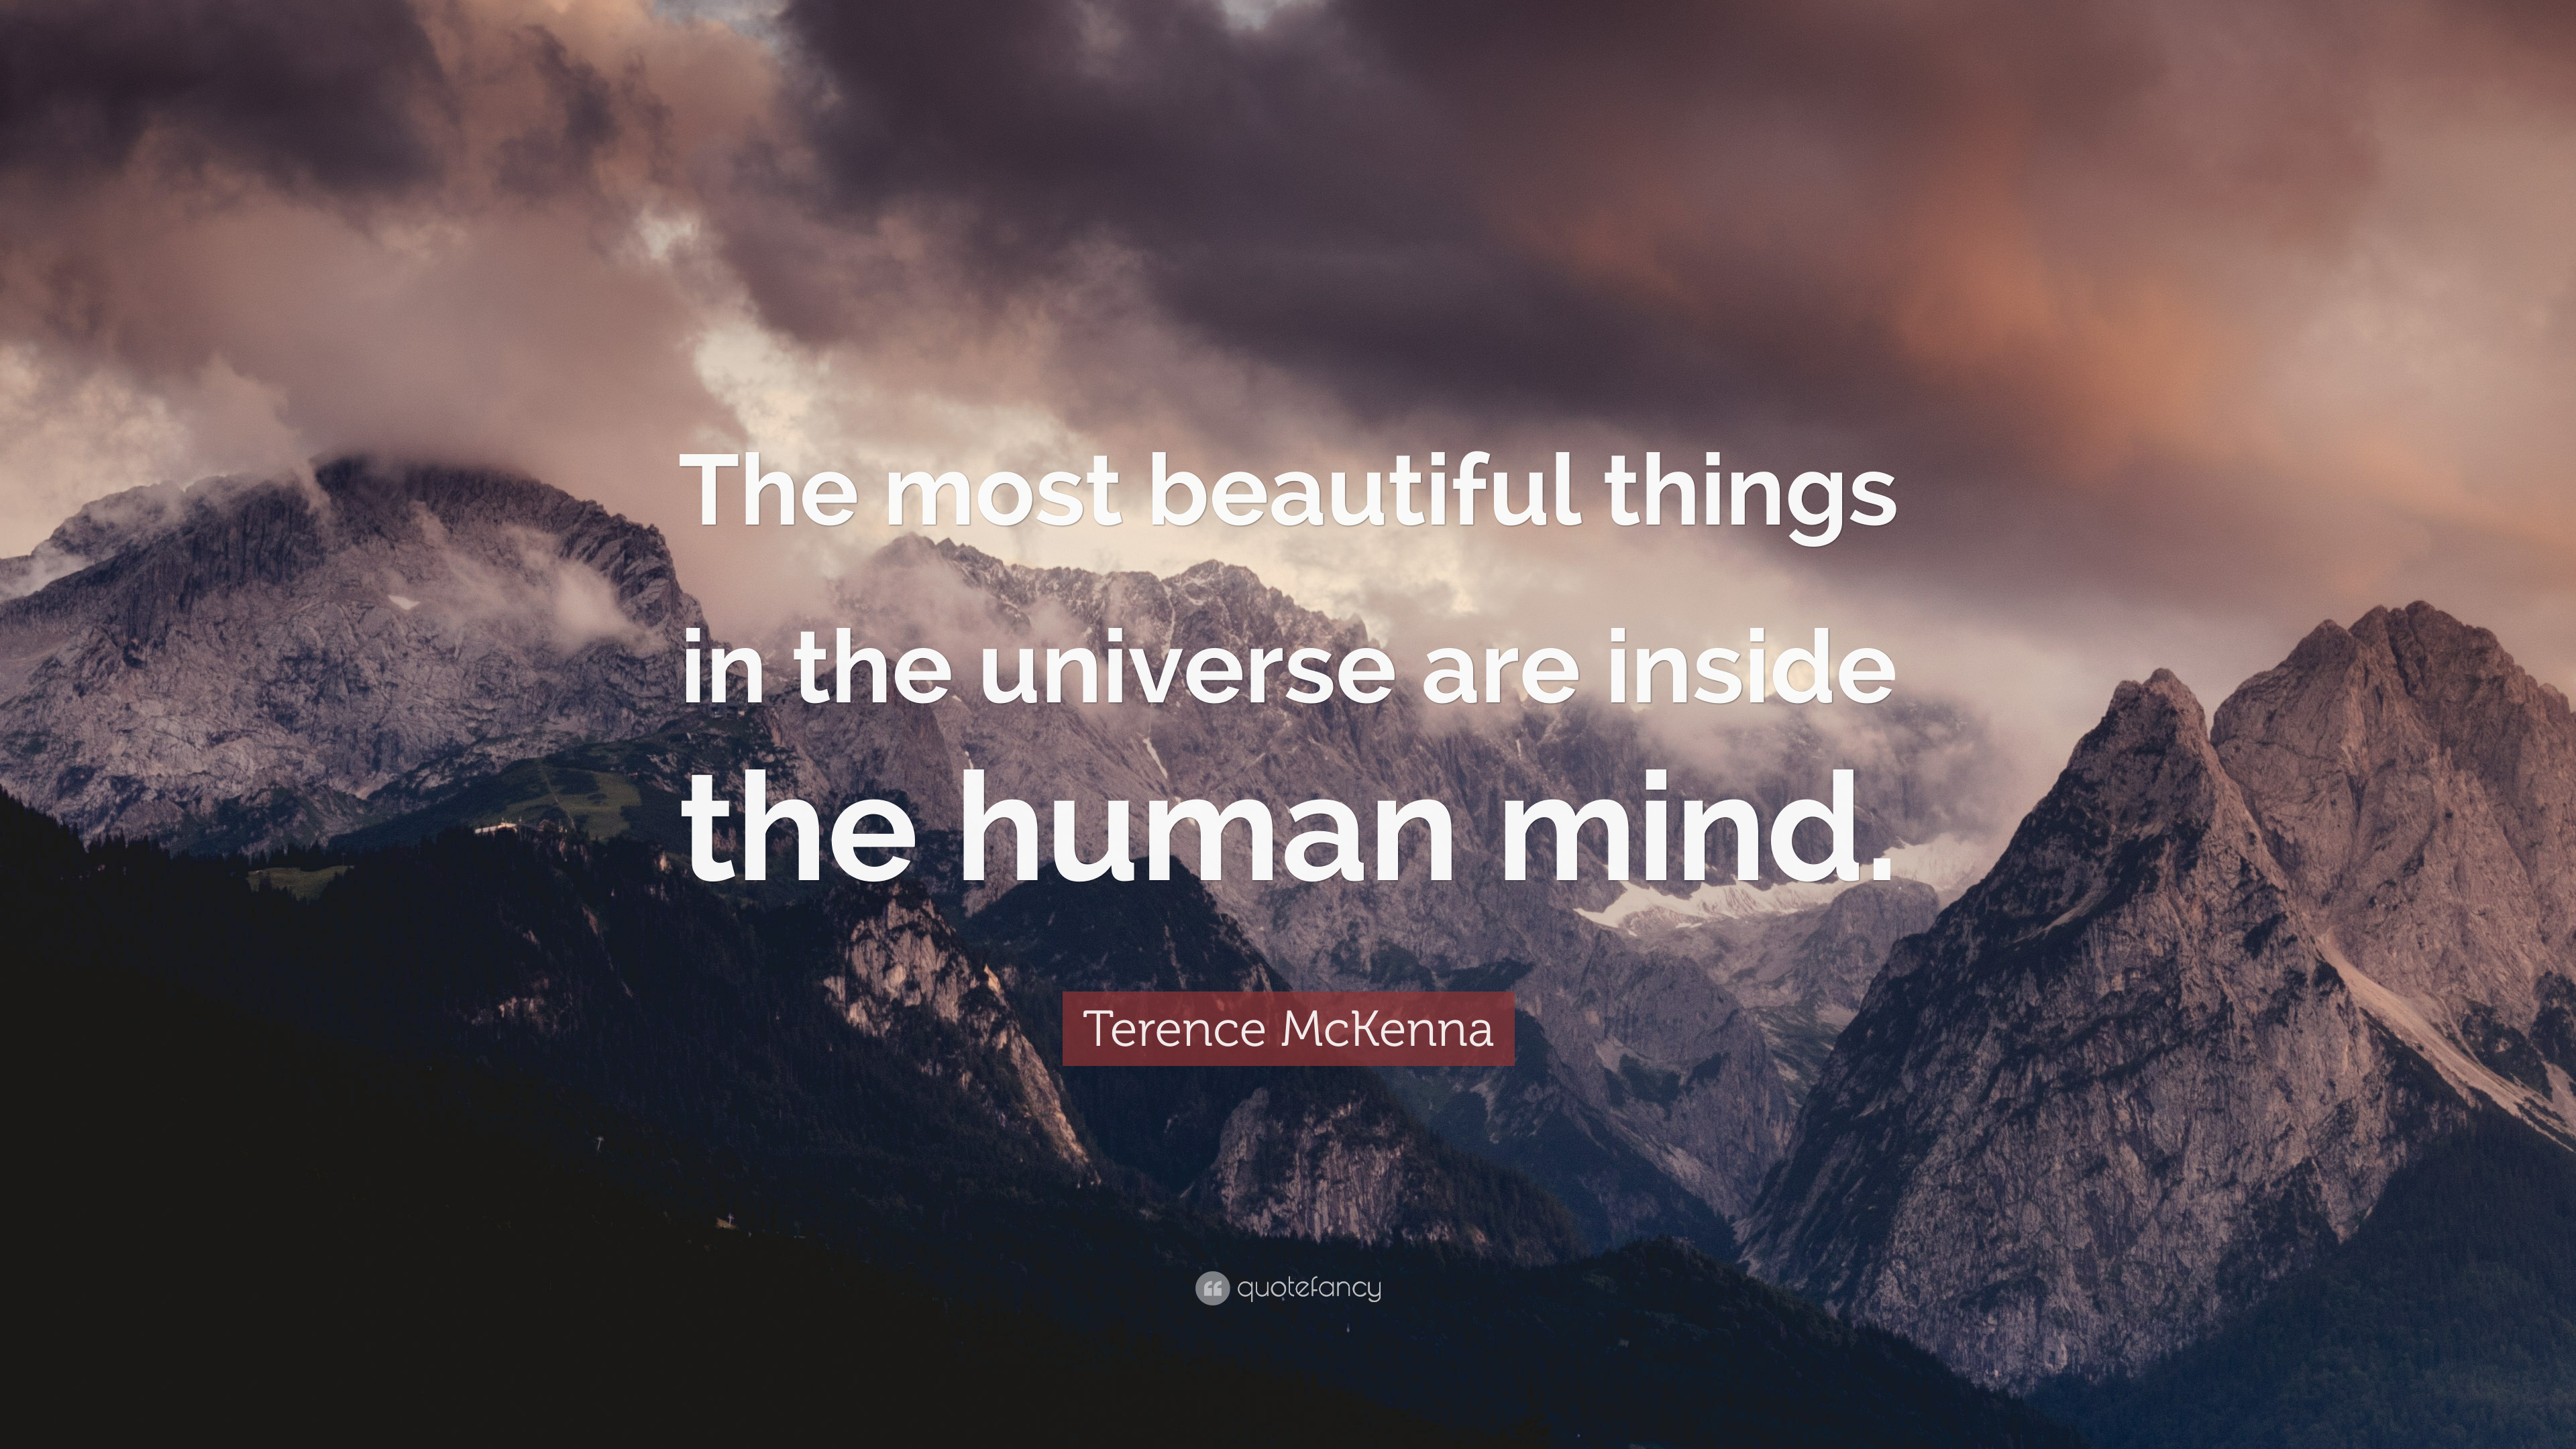 Terrence Mckenna Wallpaper Quotes Terence Mckenna Quote The Most Beautiful Things In The